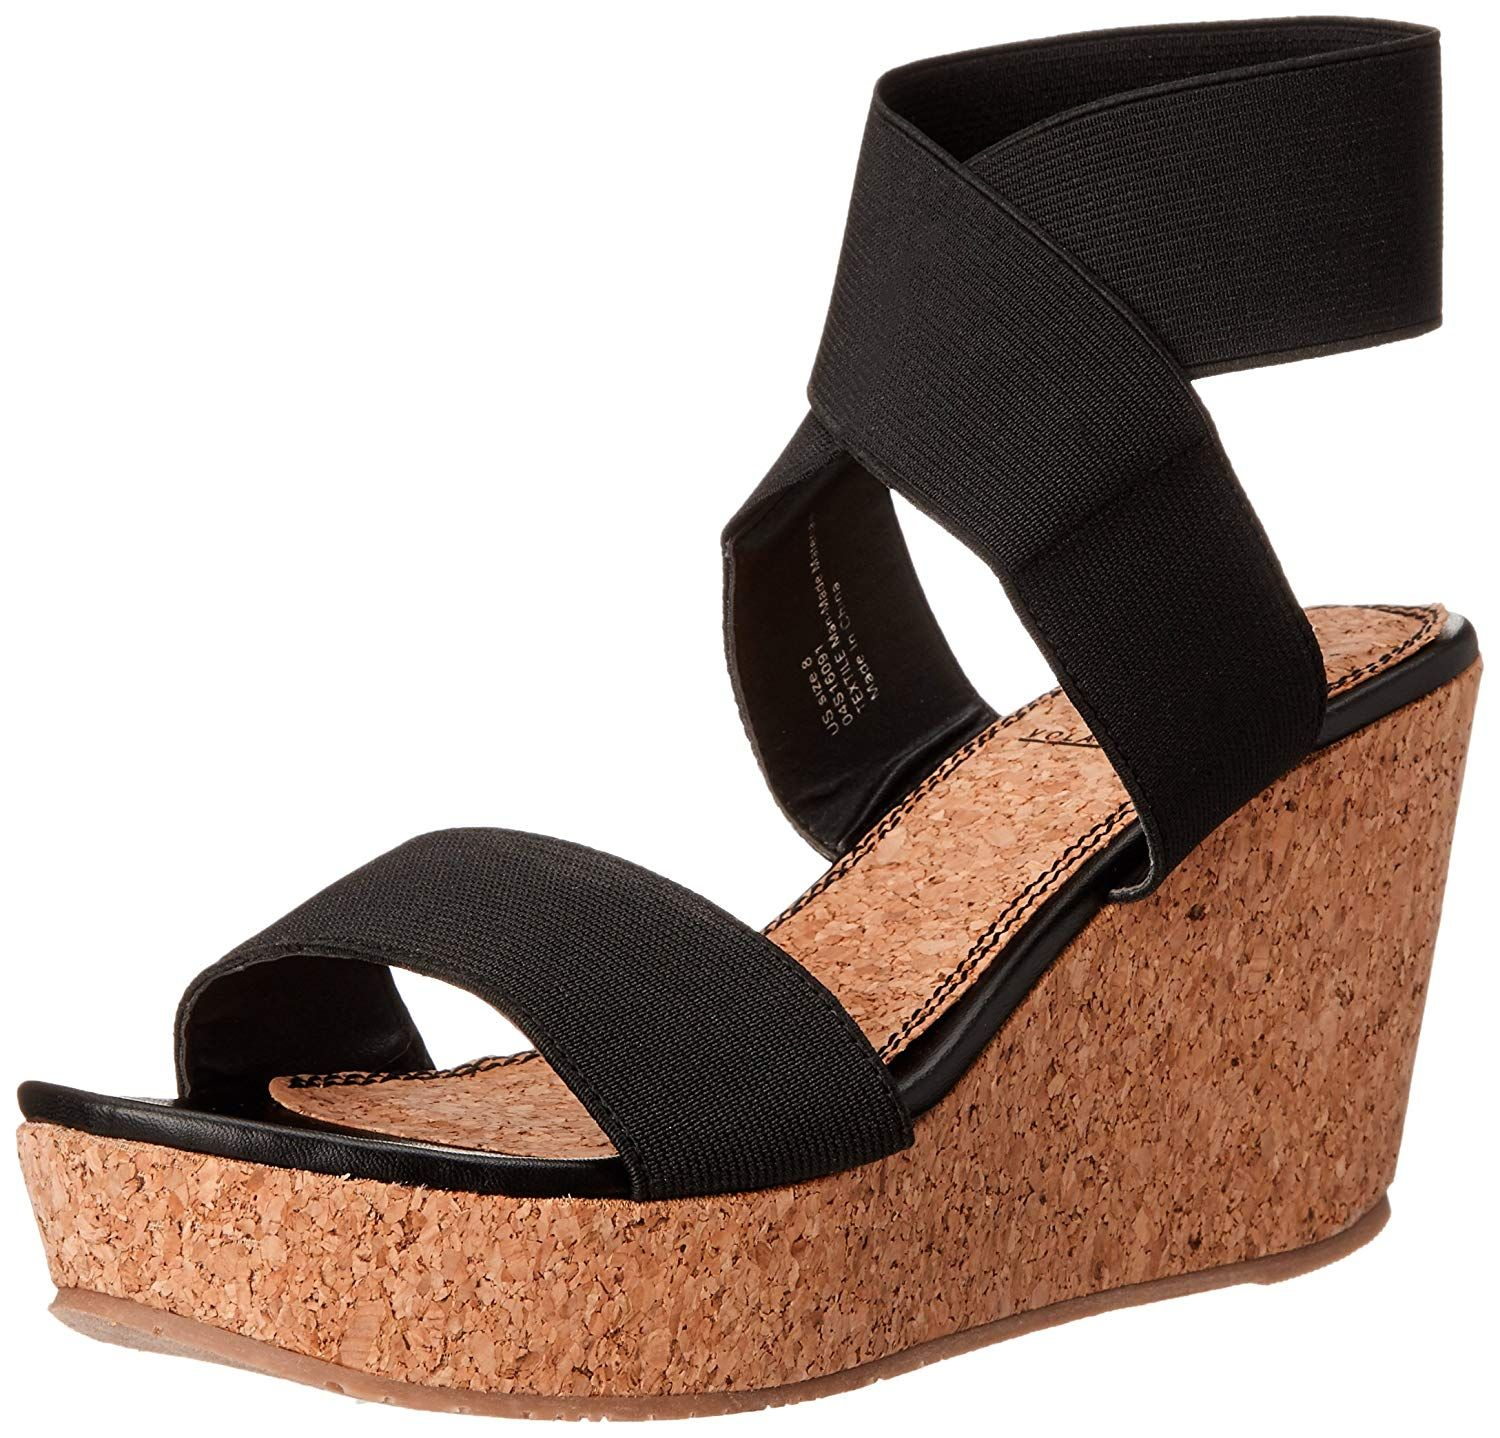 96294c688 Volatile Women s Mandaya Wedge Sandal. Criss cross with stretch upper on  mid wedge. Women s Shoes